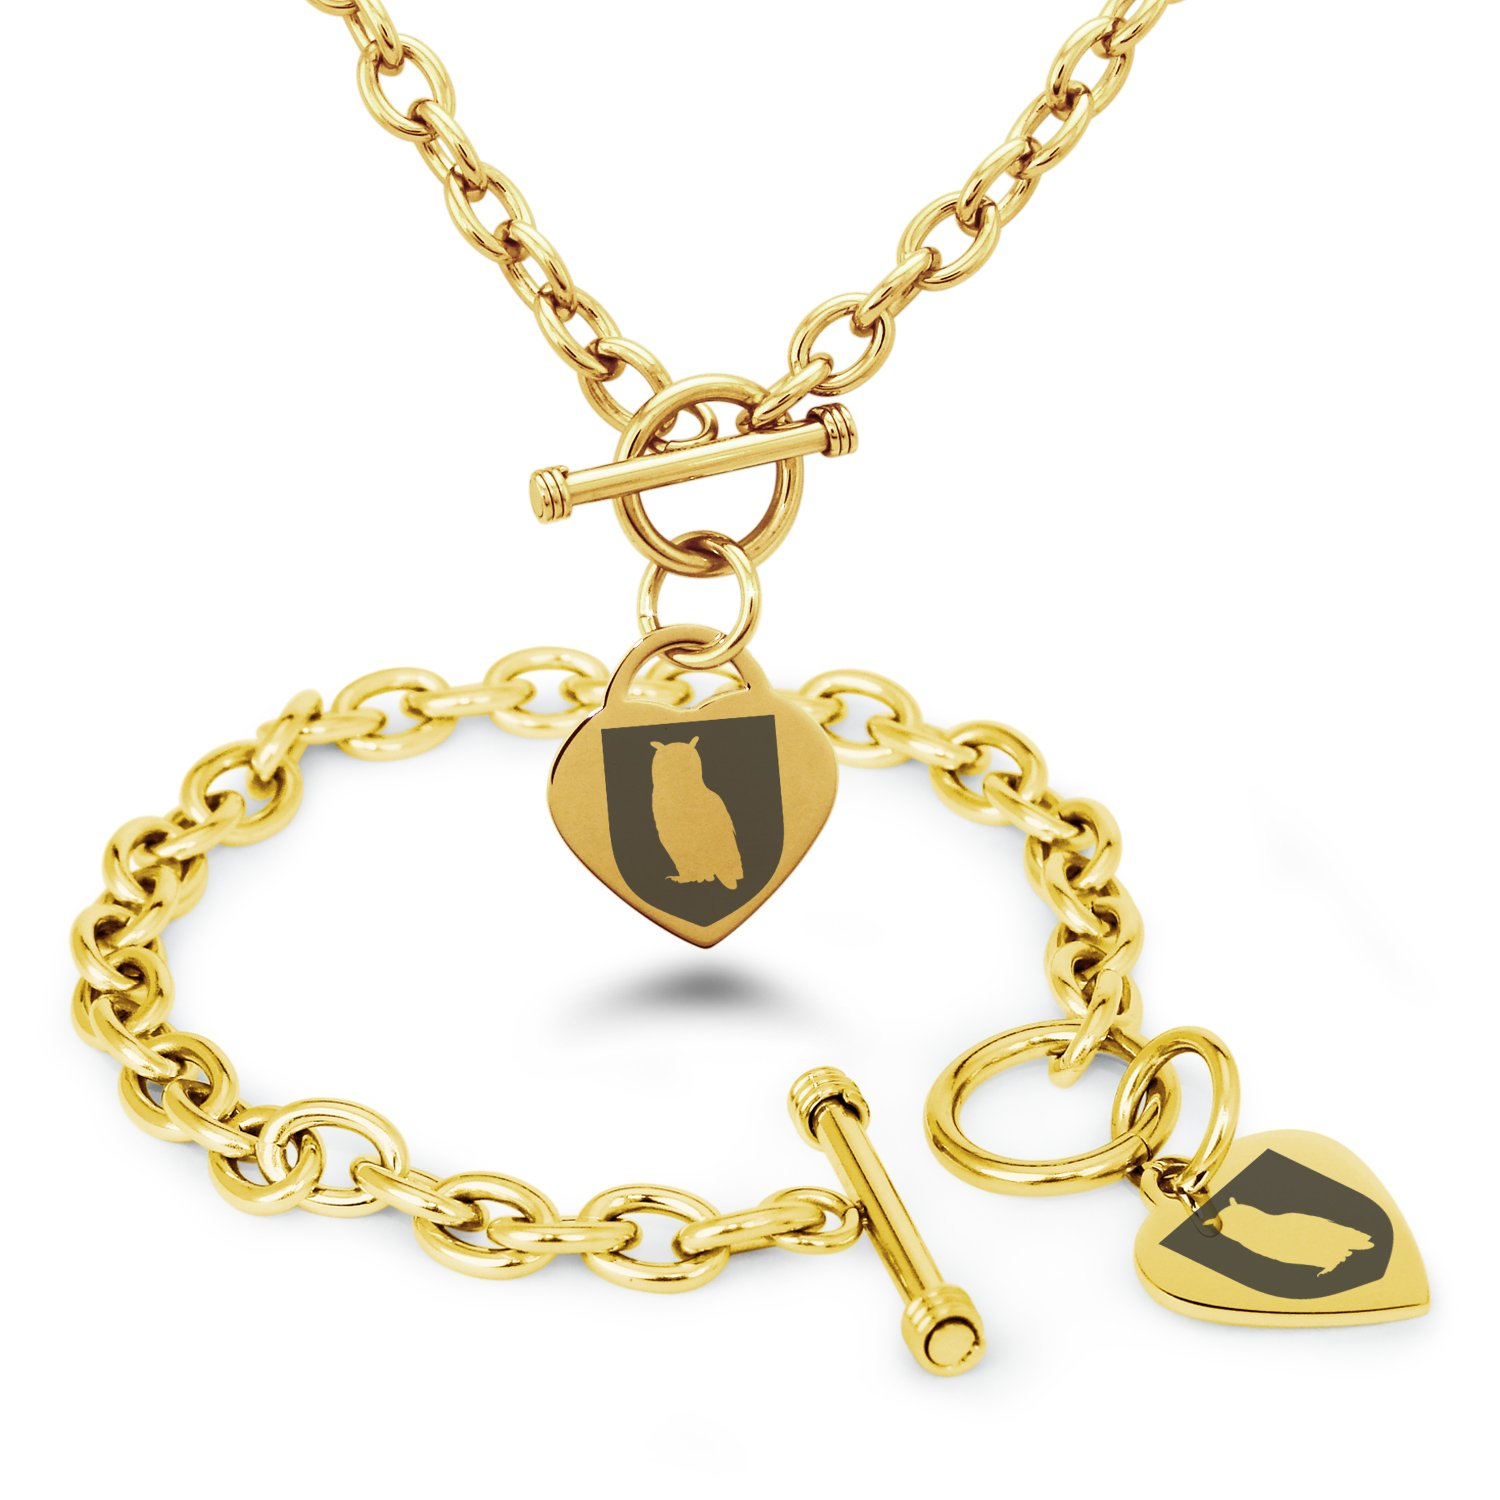 Tioneer Gold Plated Stainless Steel Owl Wisdom Coat of Arms Shield Symbols Heart Charm, Bracelet & Necklace Set